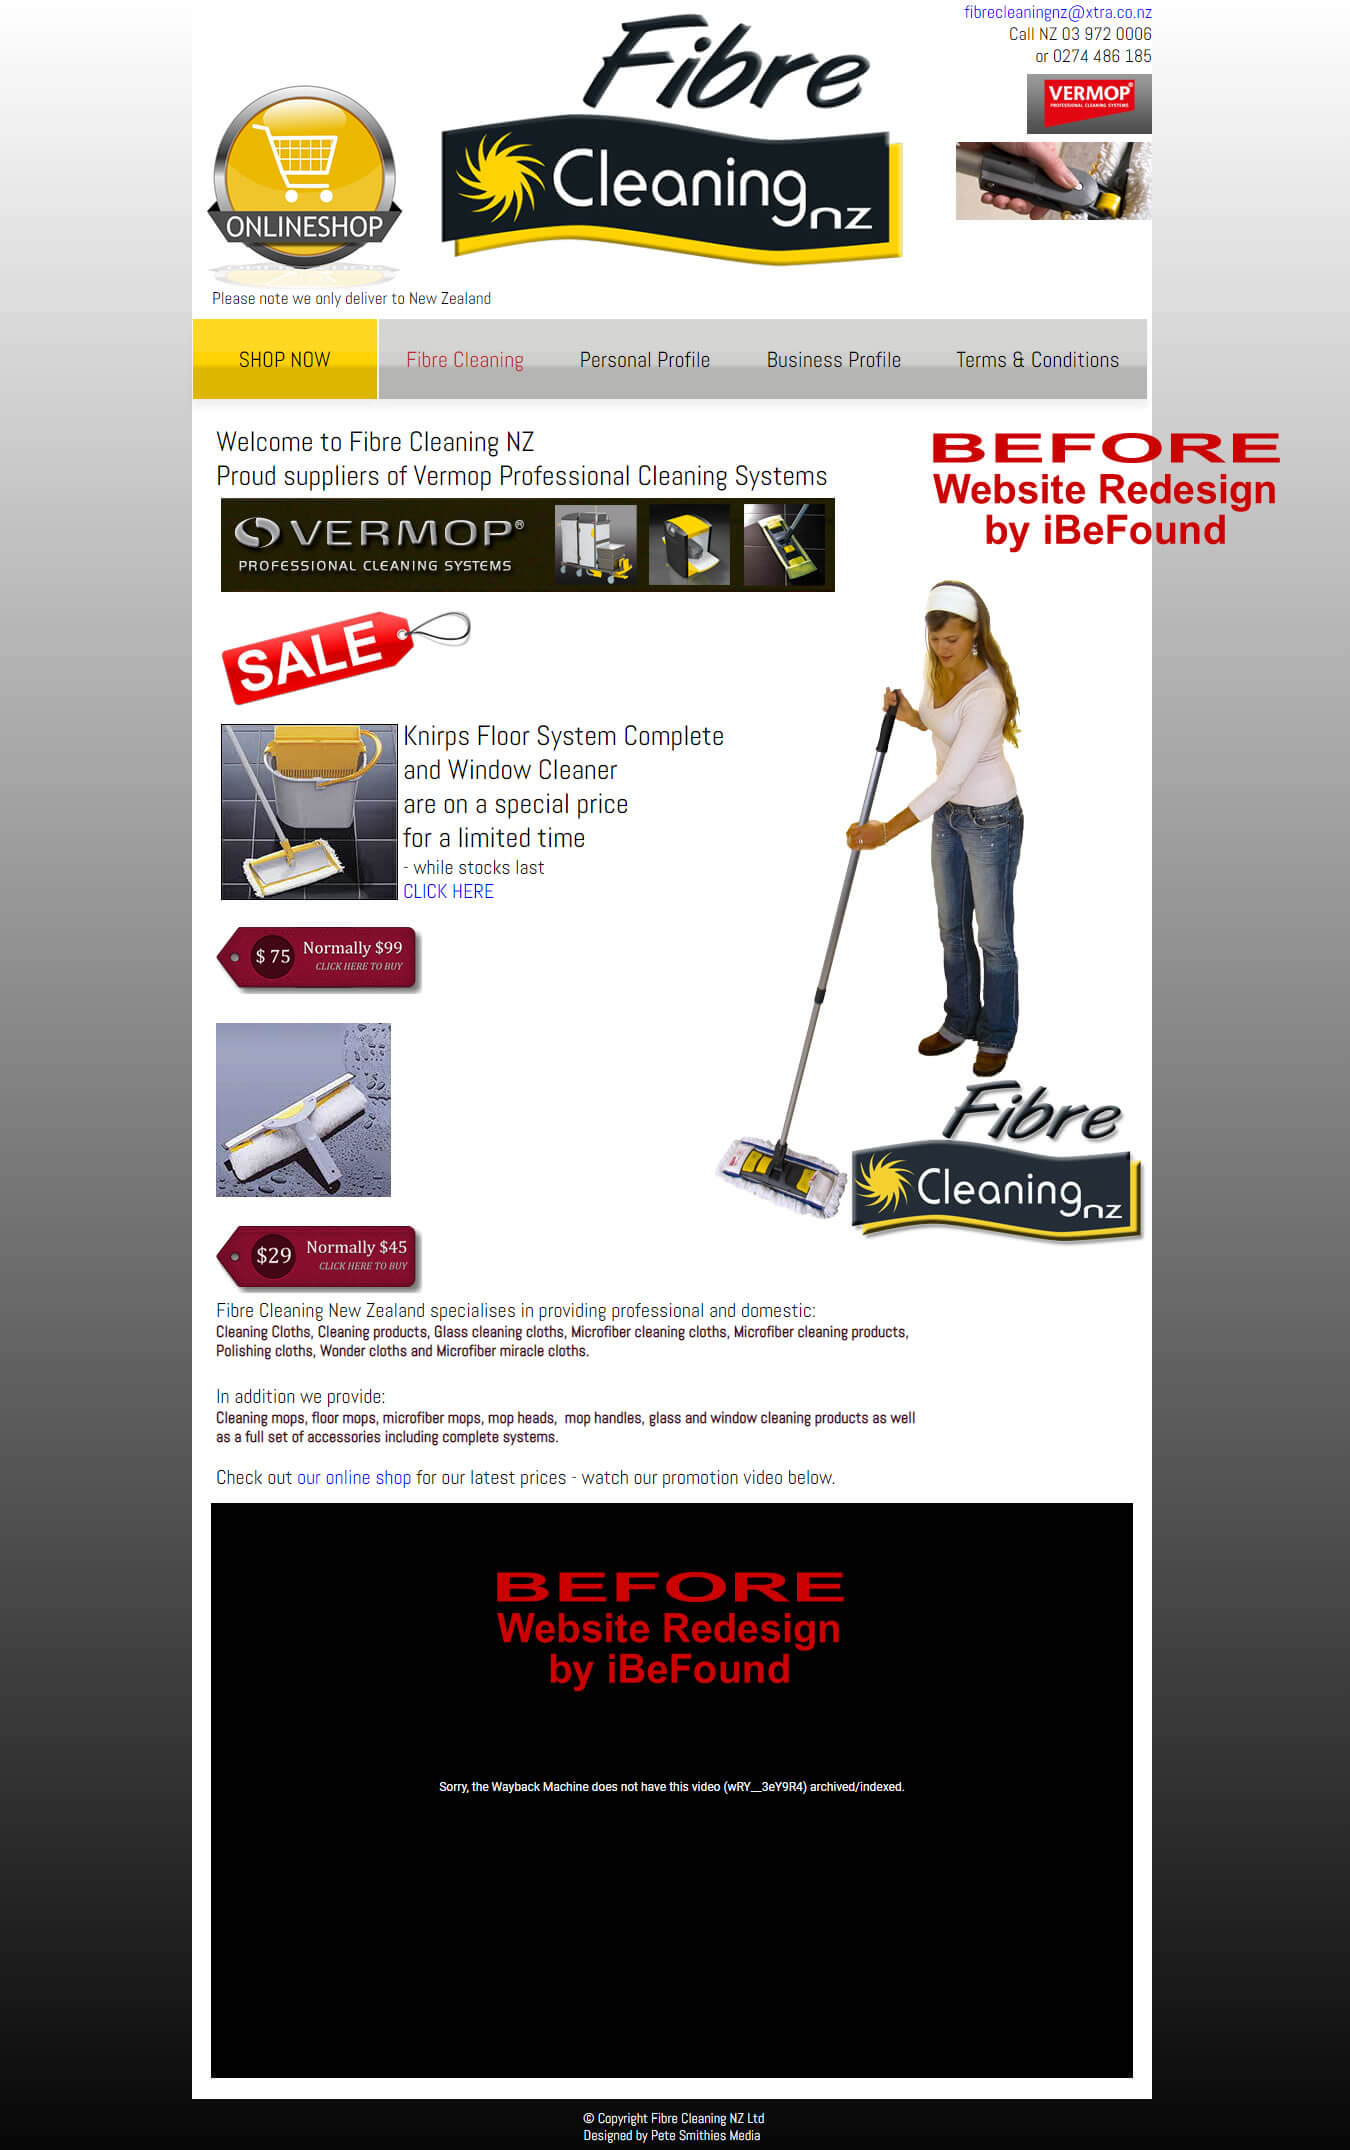 Homepage Of Fibre Cleaning NZ Ltd Before Website Redesign By IBeFound Digital Marketing